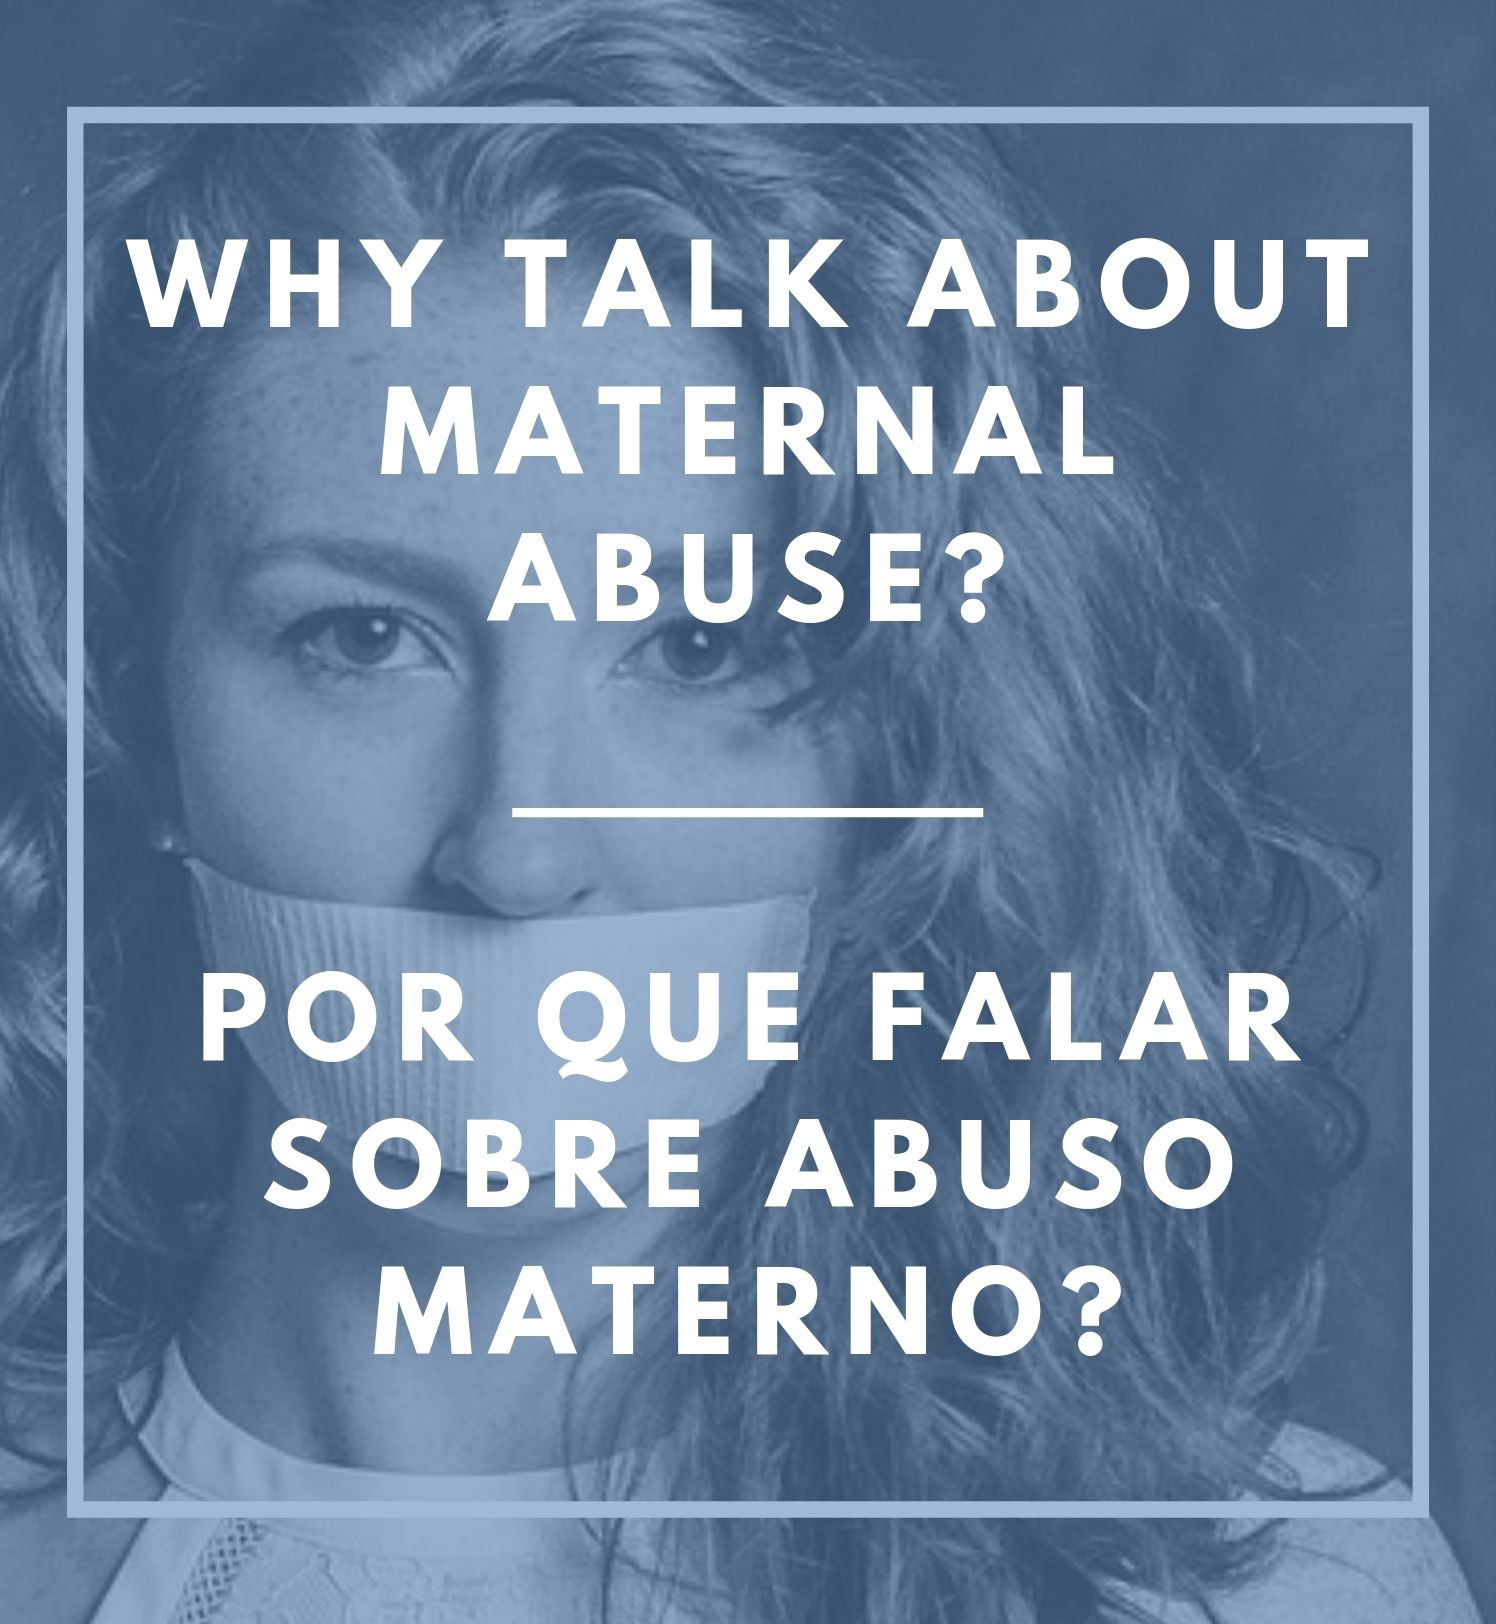 Why talk about maternal abuse and not abusive parents?